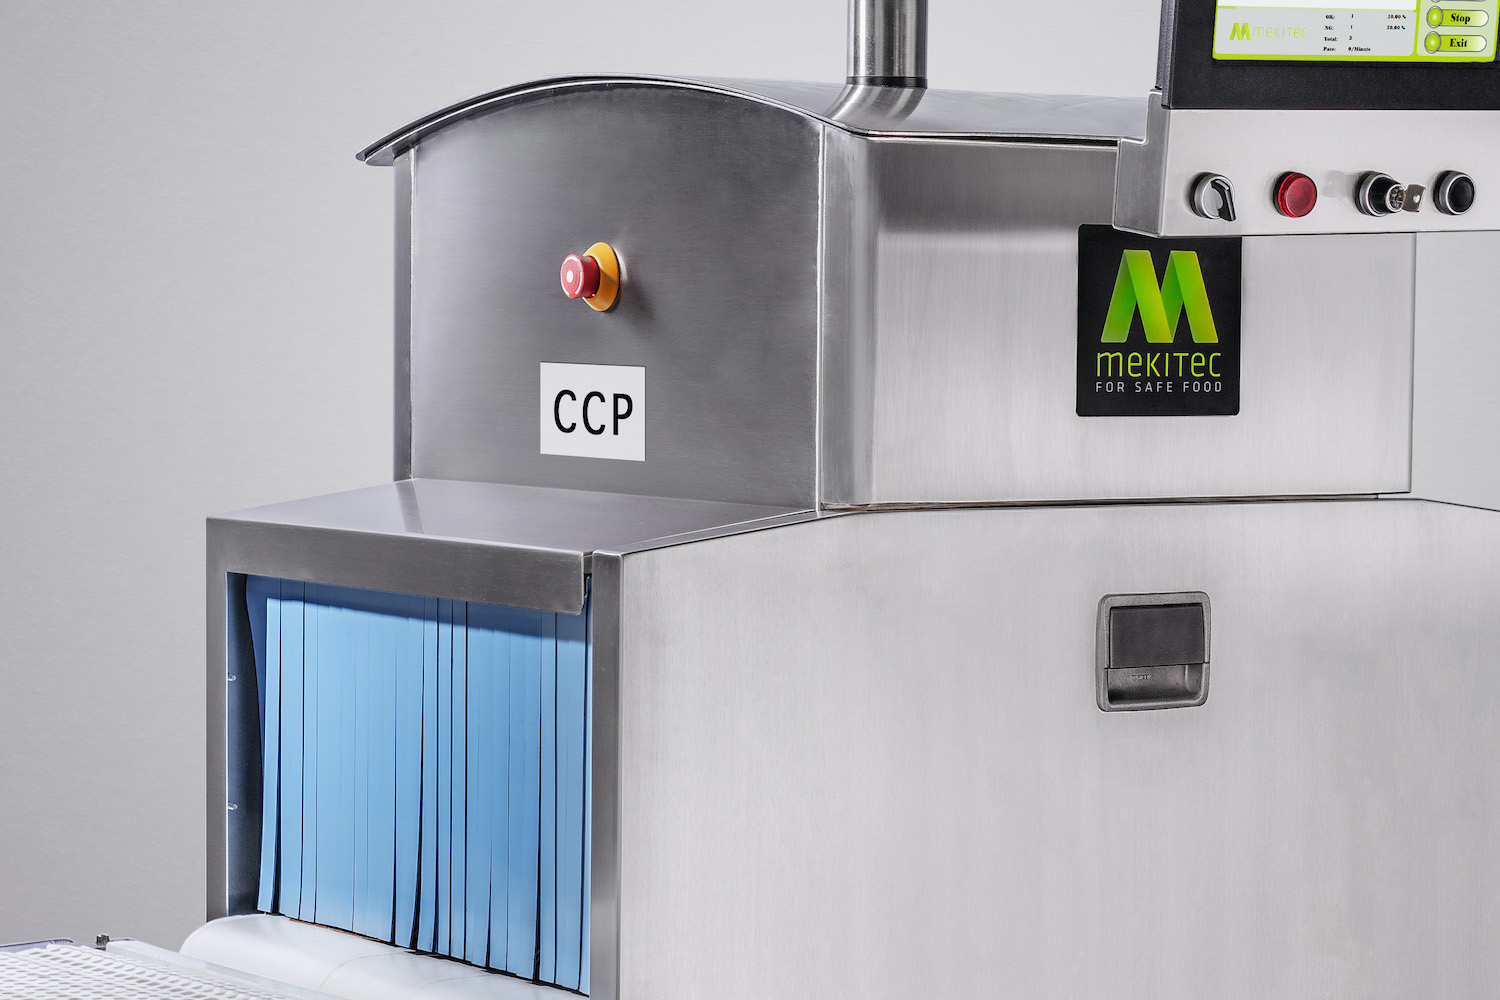 How to Get the Best Value from a Critical Control Point in Food Production?